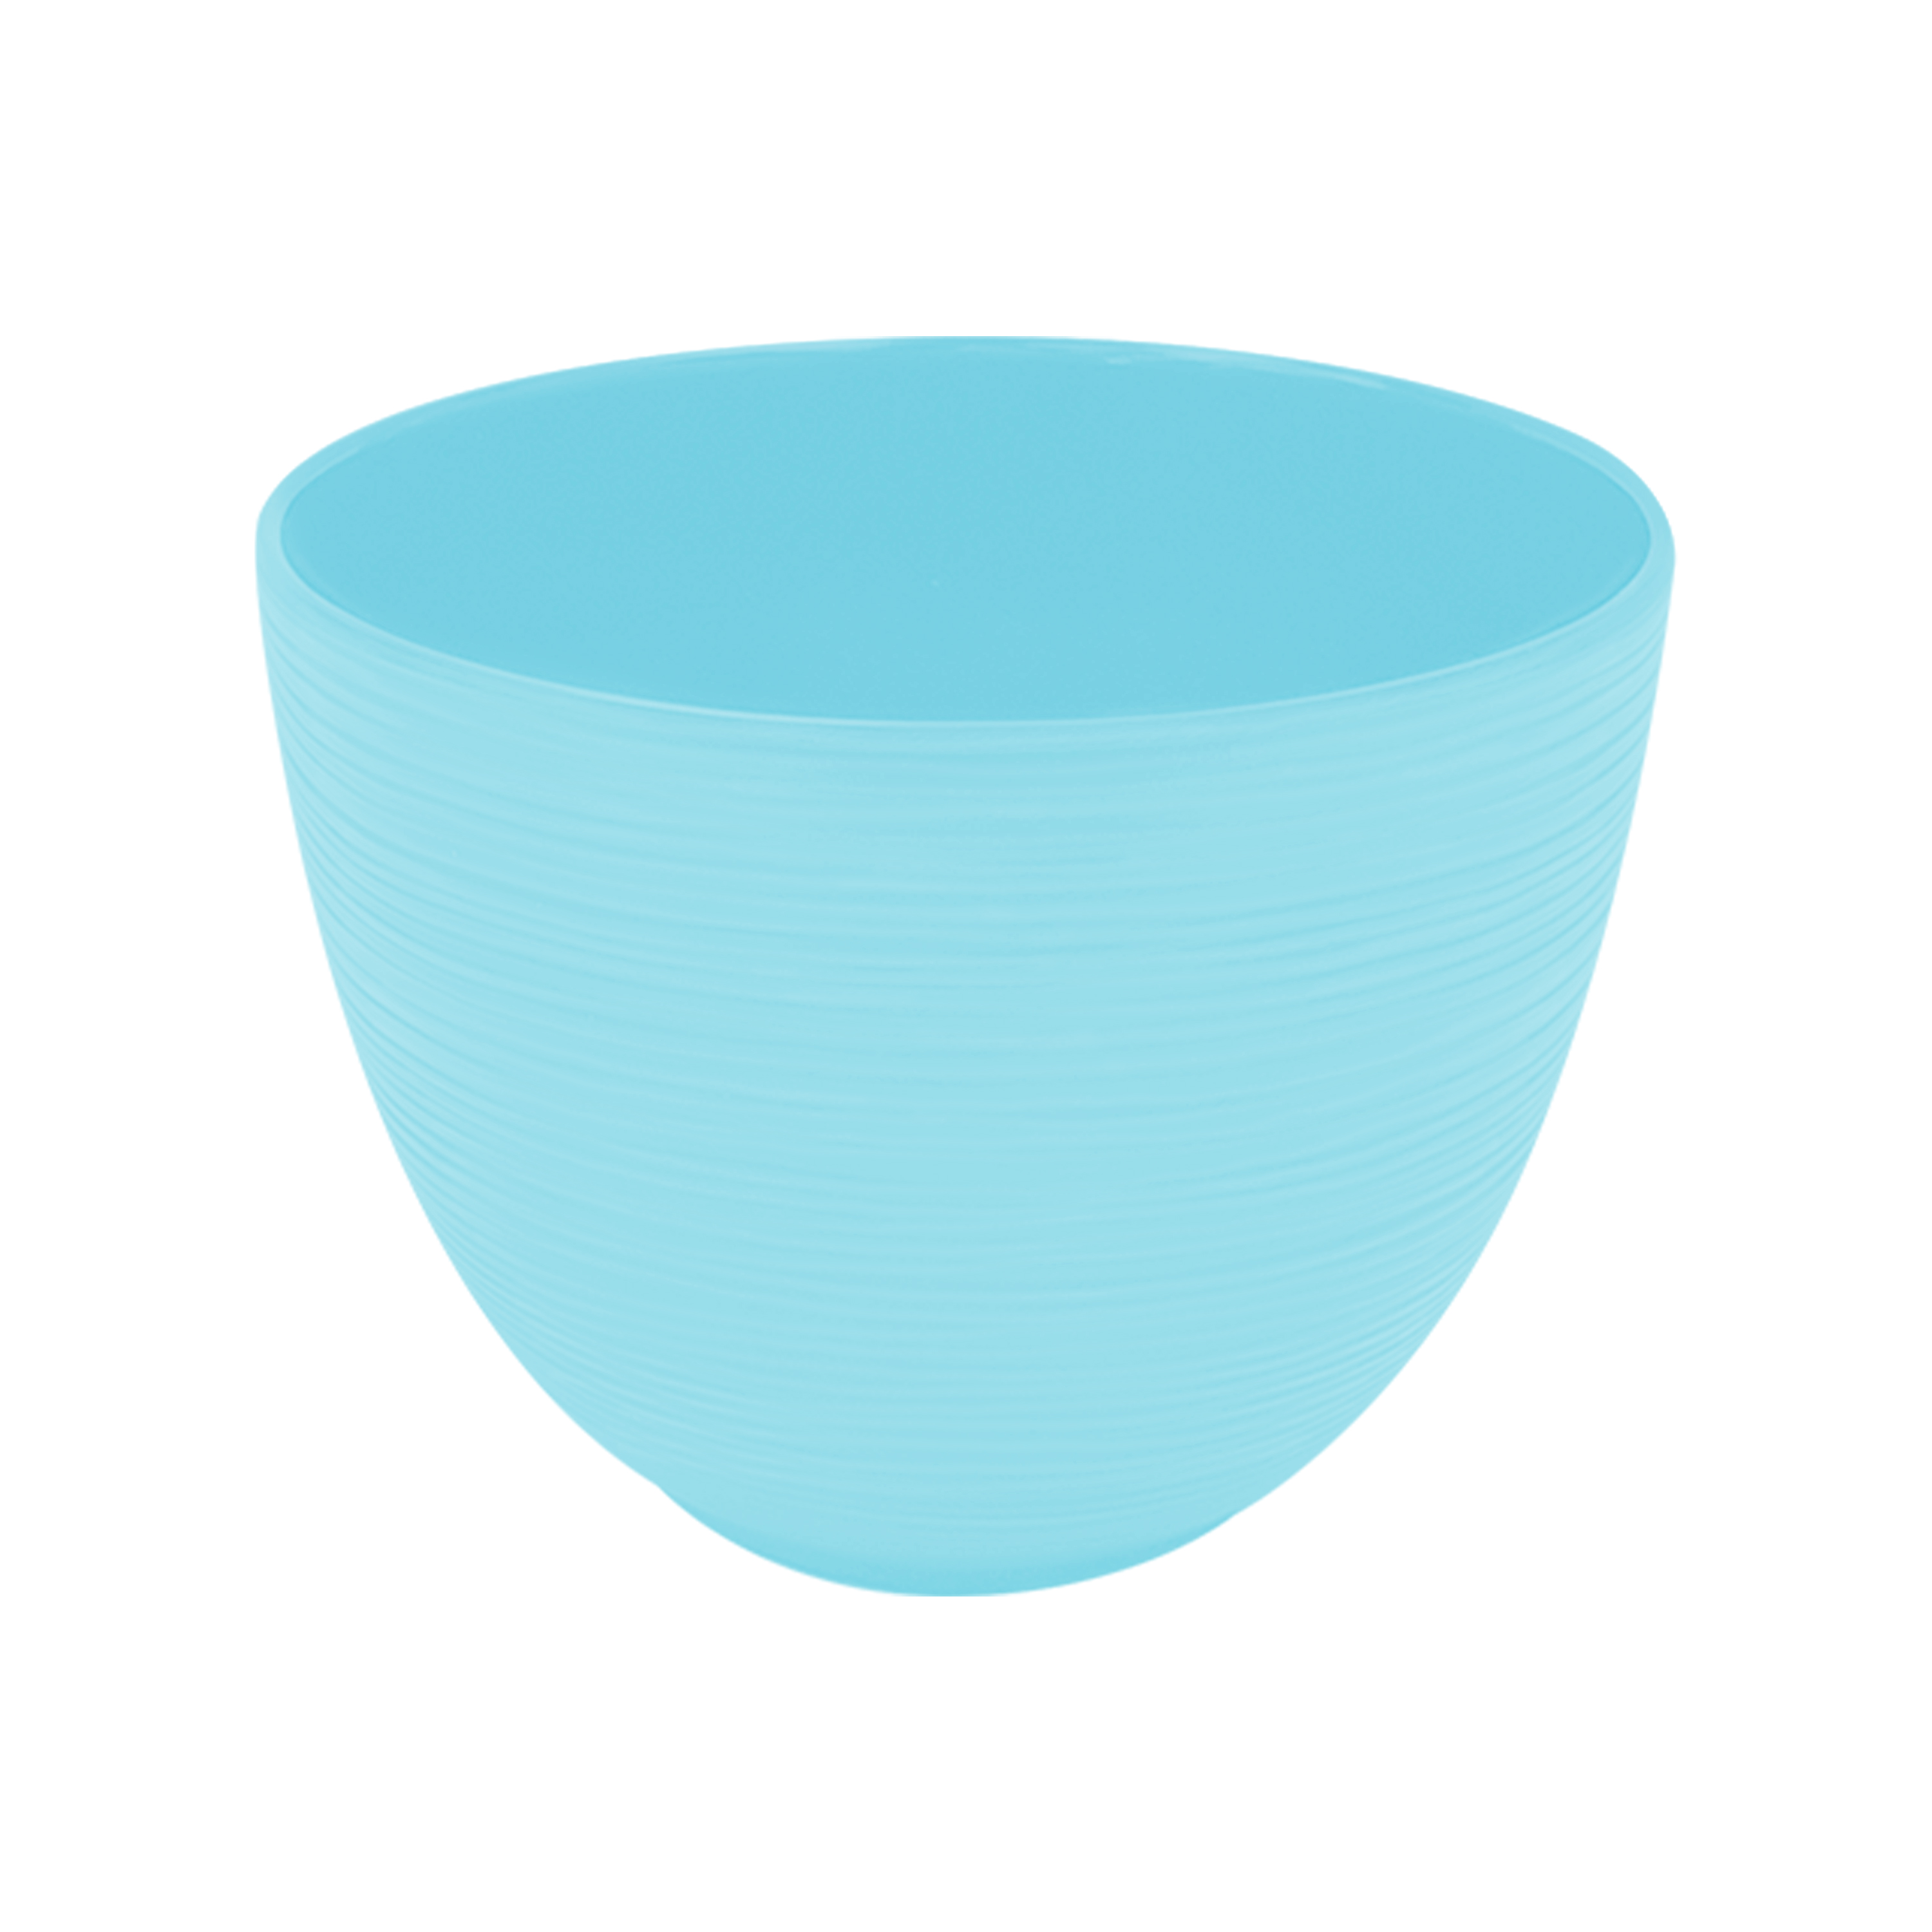 Zak Style Serving and Dip Bowls, Assorted Colors, 4-piece set slideshow image 9